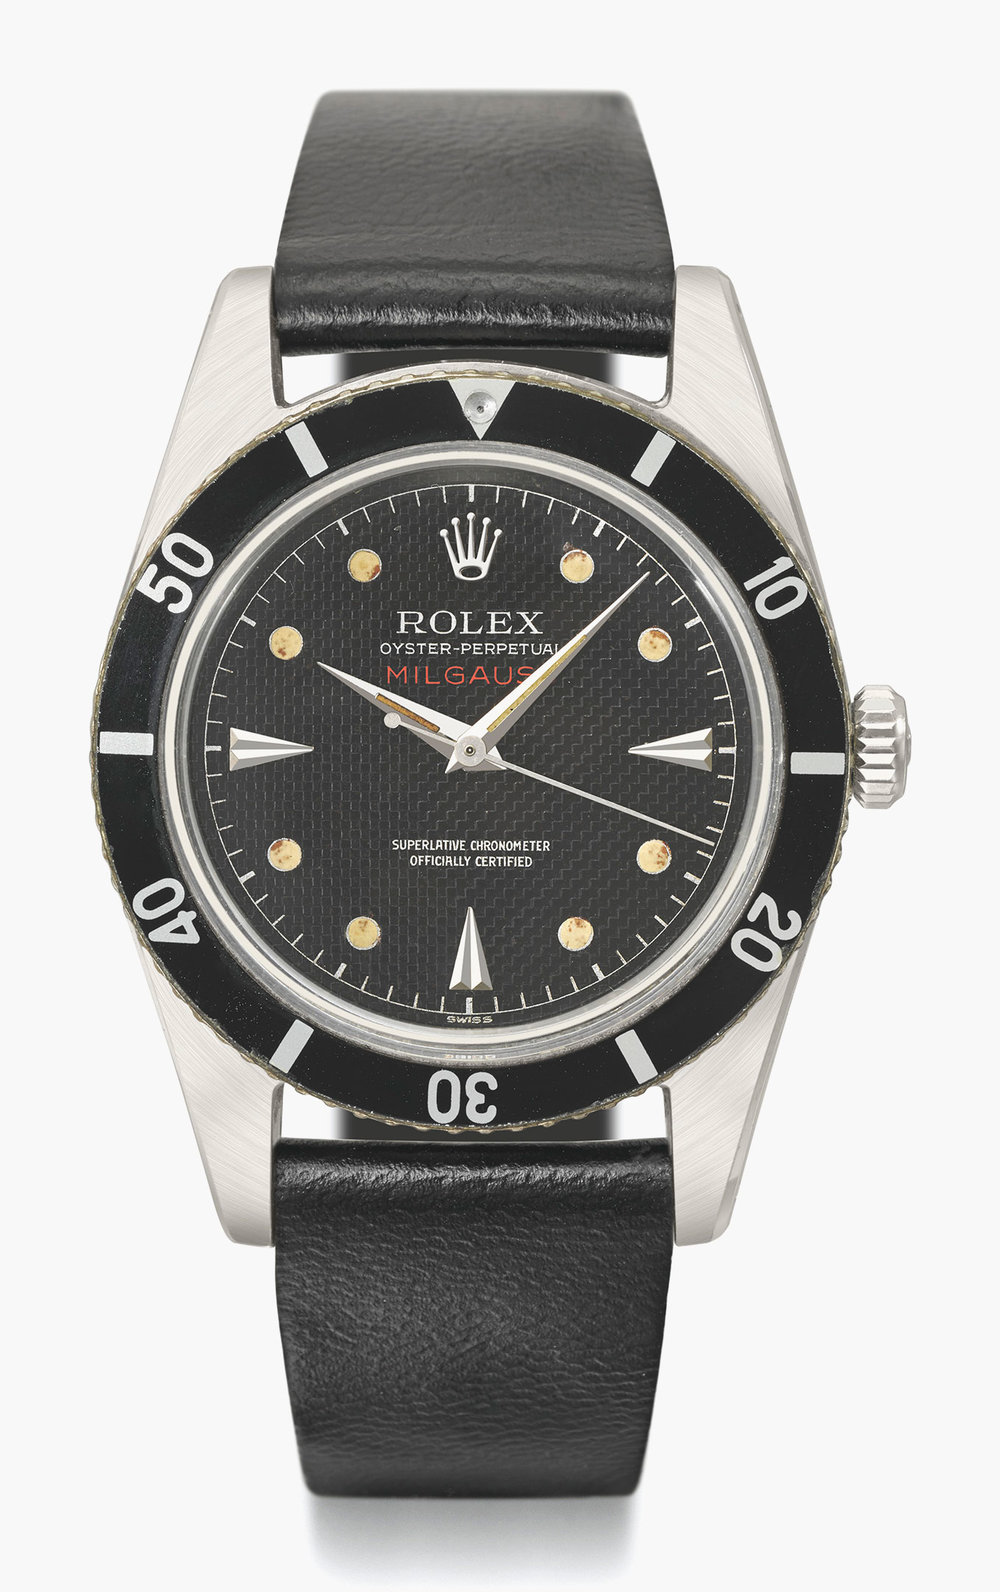 The Rolex Milgauss Ref. 6543, circa 1954. This version has a rotating bezel calibrated to sixty minutes whereas others are calibrated to 6 units. Photo credit: Christie's.